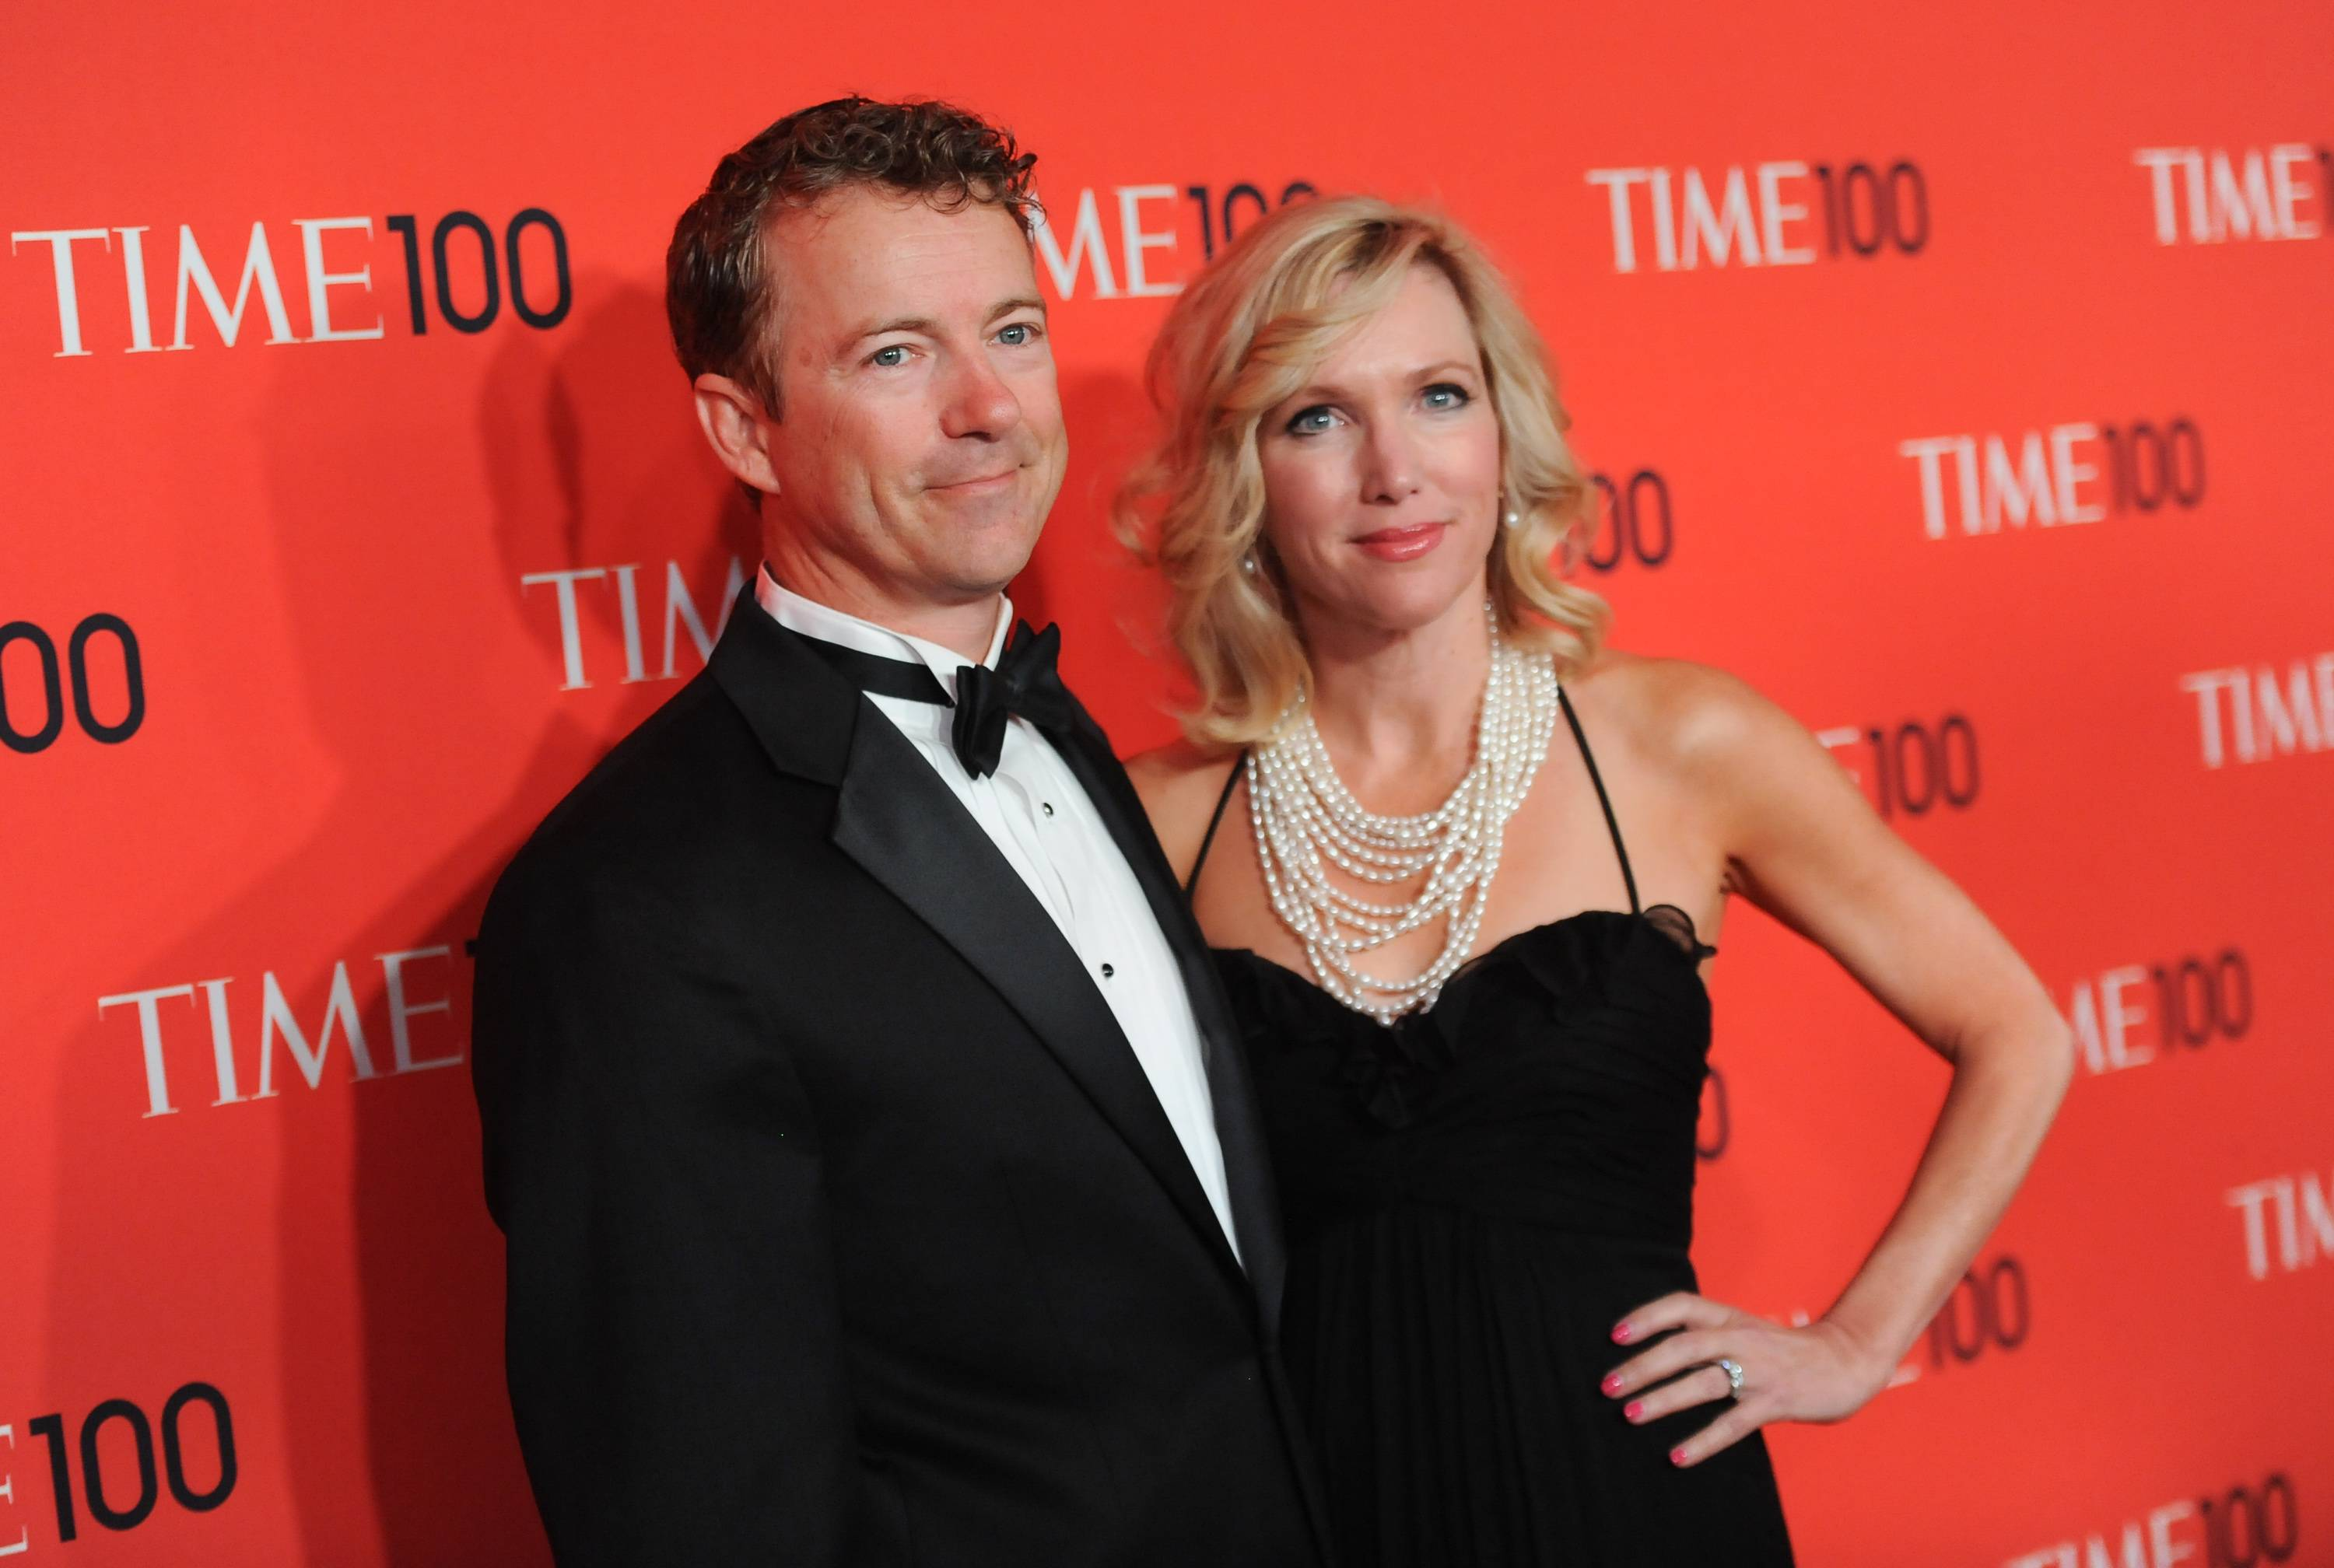 Sen. Rand Paul is seen with his wife, Kelley Ashby. In the lead-up to the 2016 presidential campaign, Paul has made much of his wife being